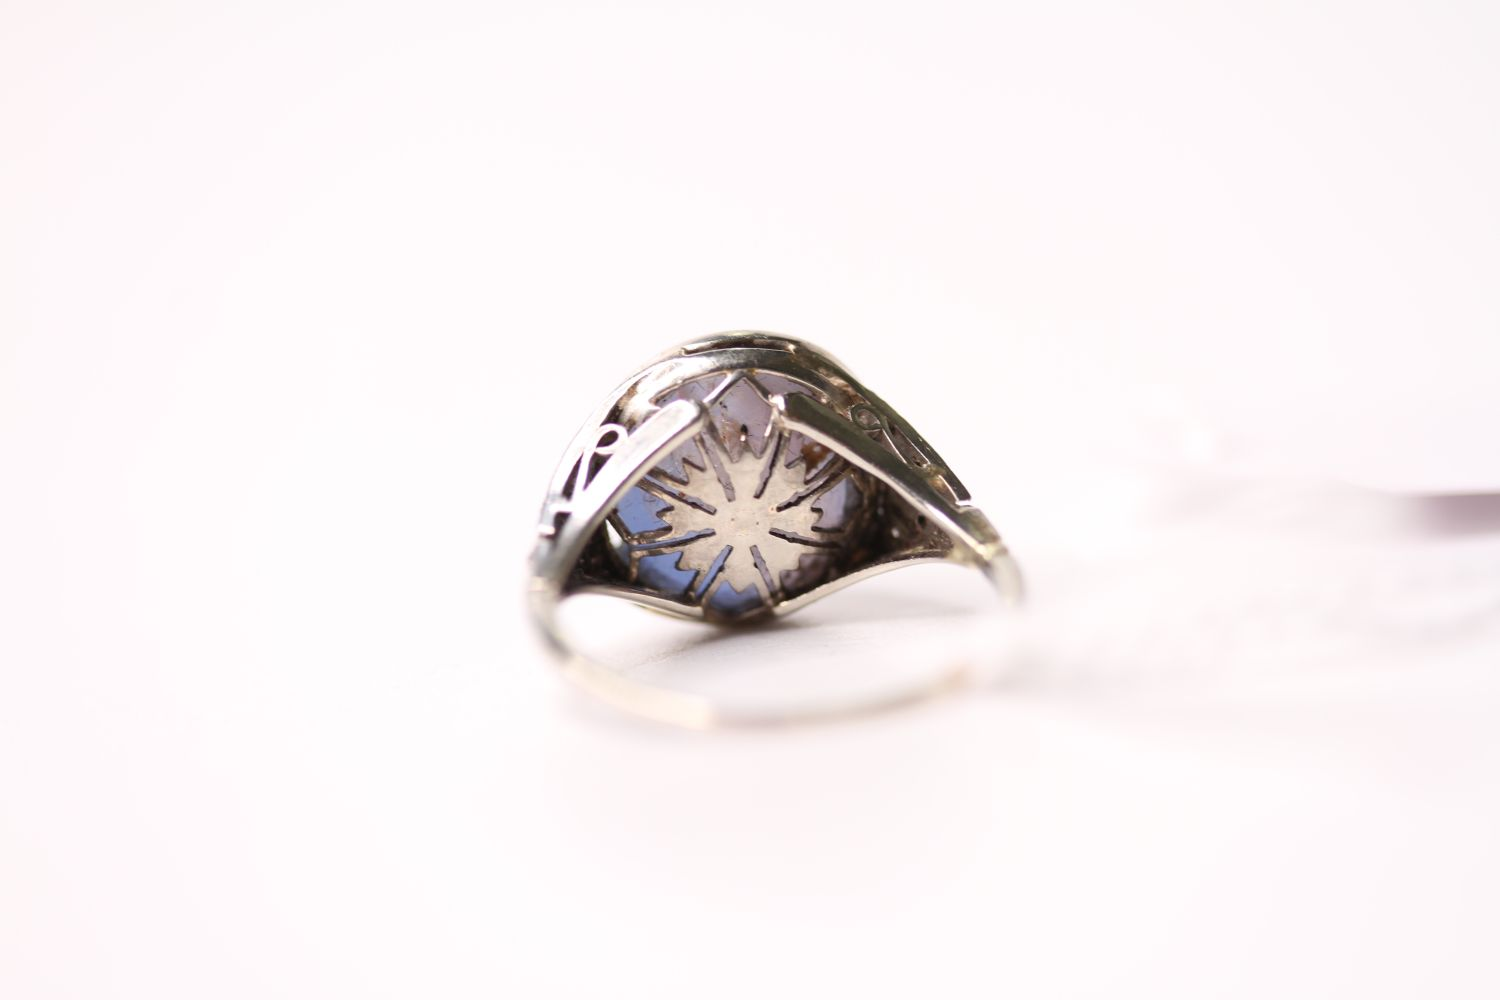 Cabochon Star Sapphire Ring, set with a cabochon cut star sapphire, art deco style, size O. - Image 4 of 4